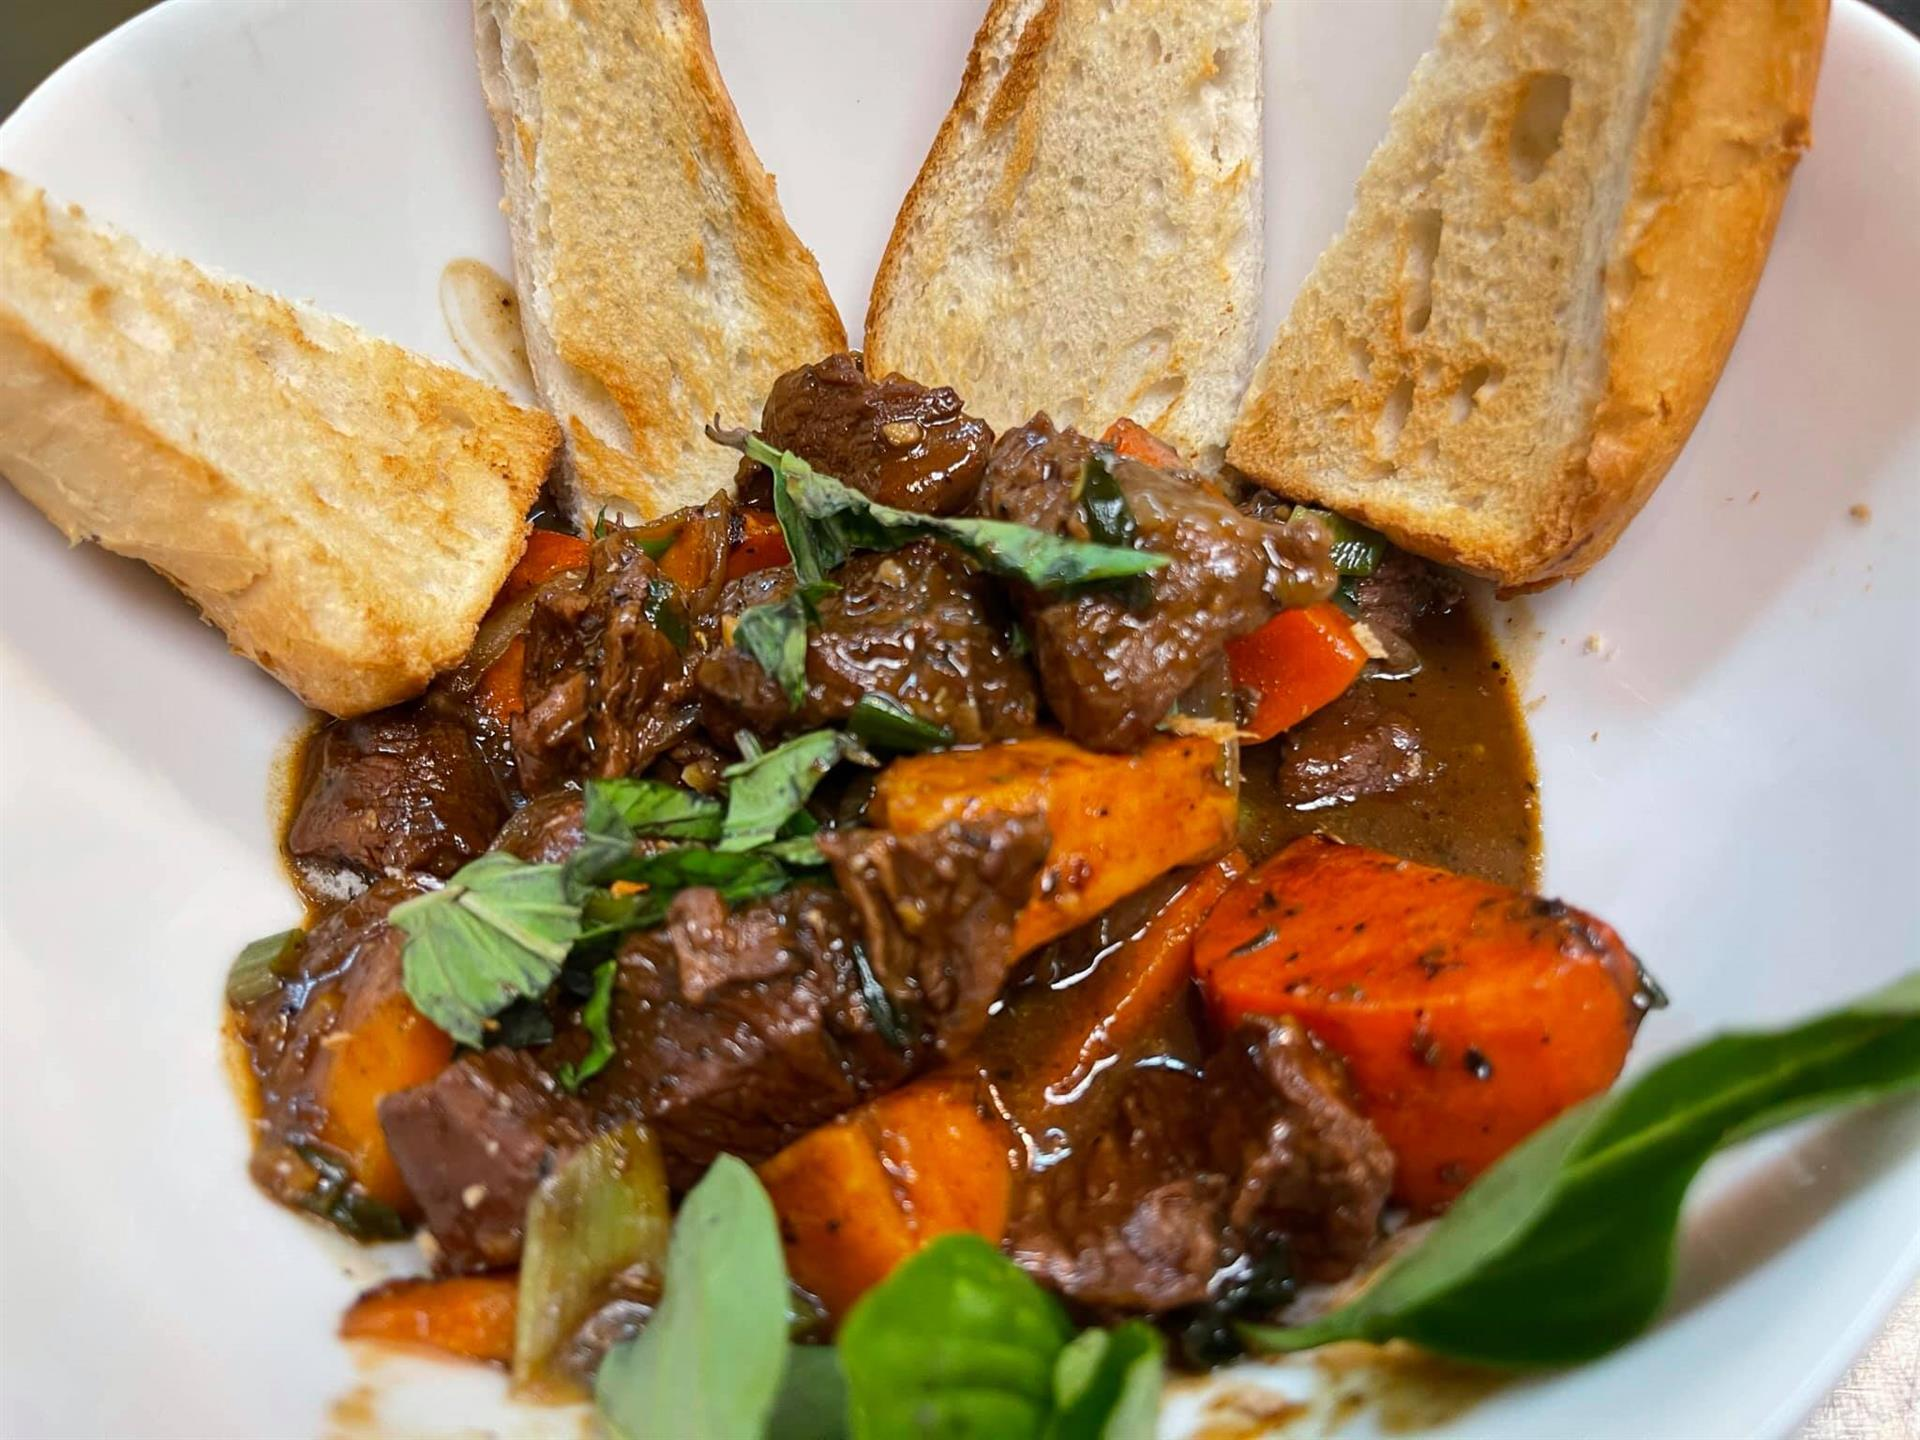 Meat with sauce, vegetables, and breadsticks